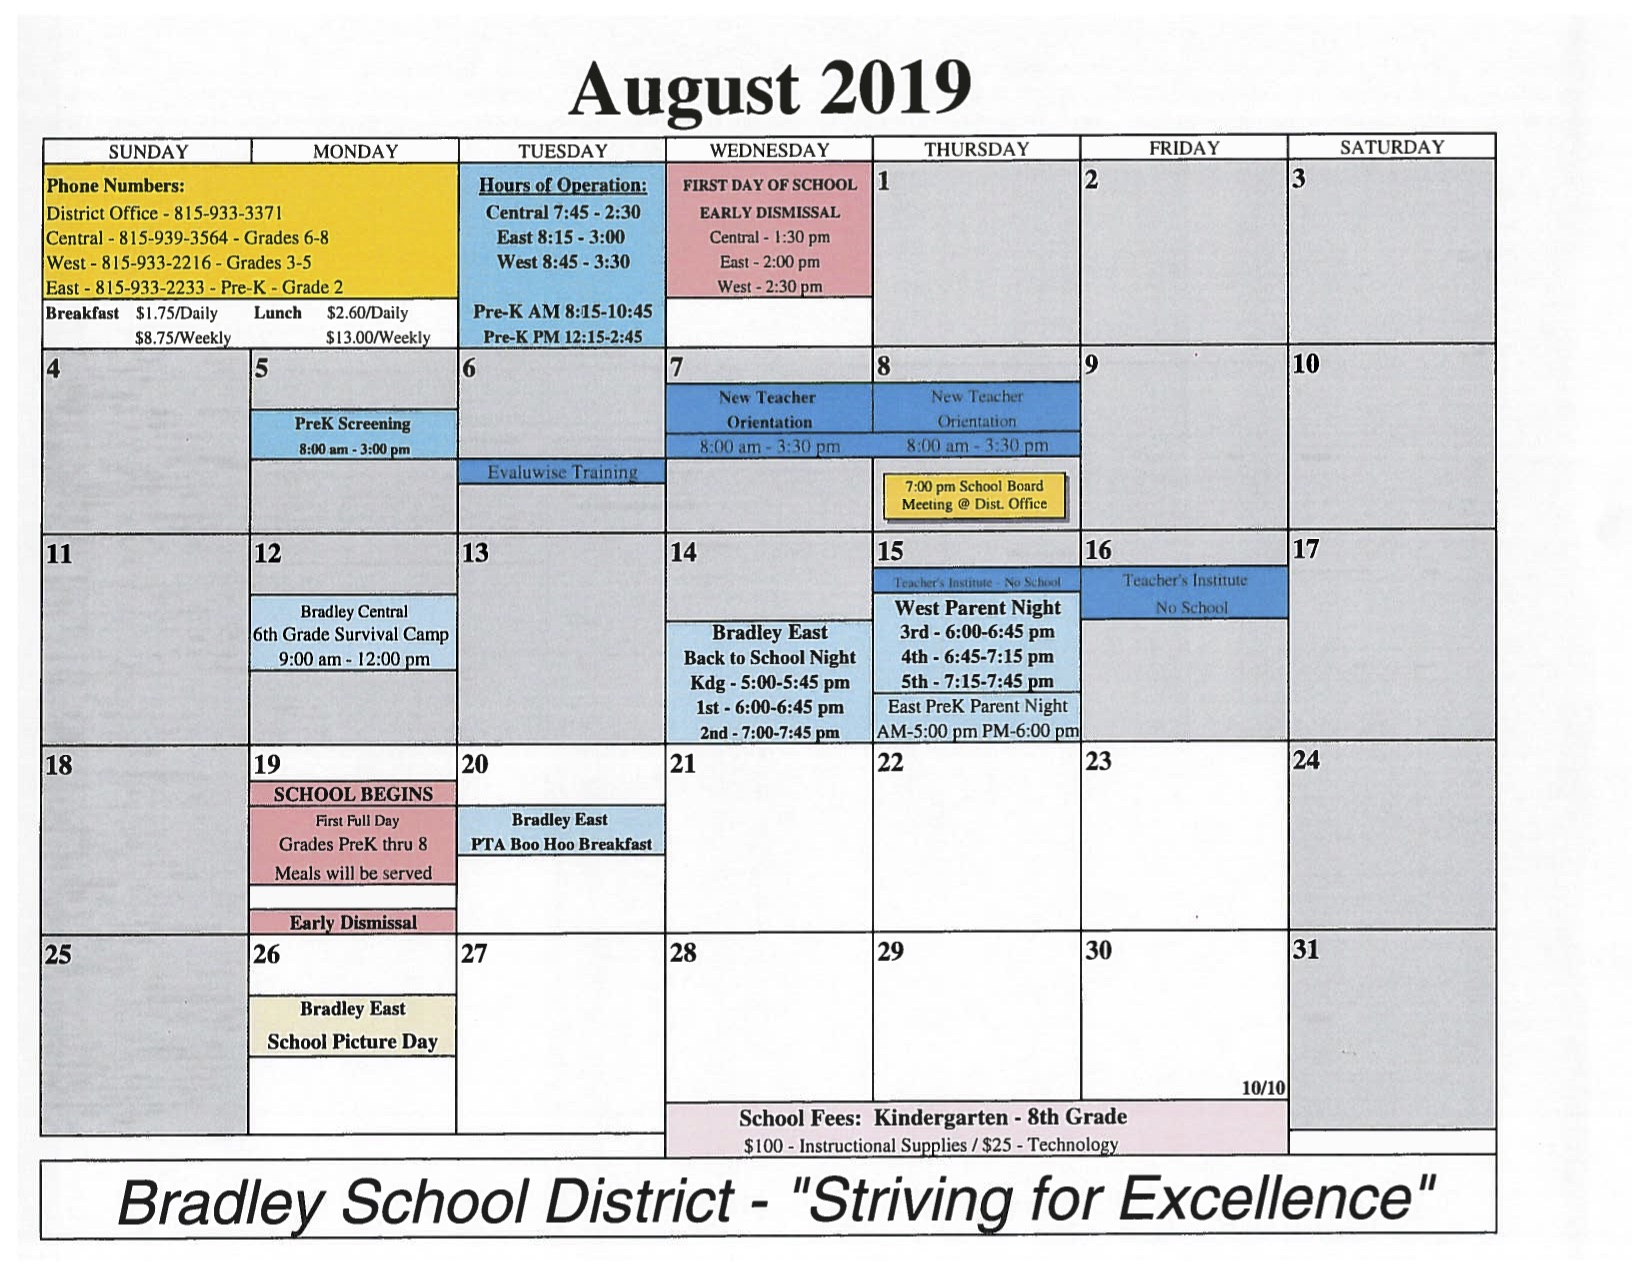 Finalized Calendar for 2019-2020